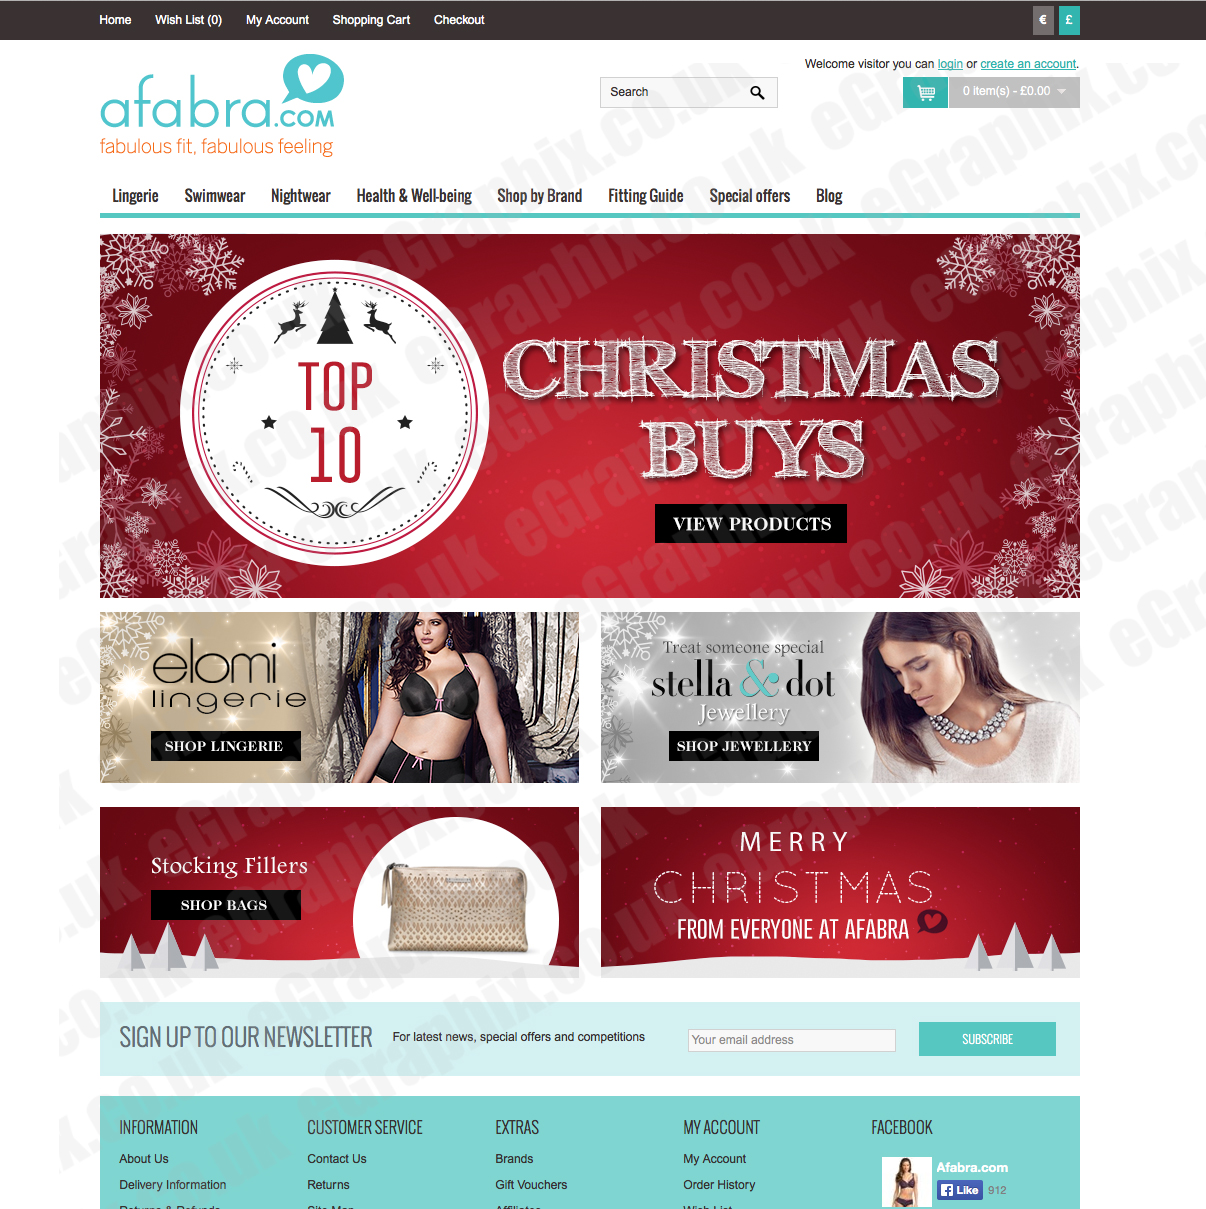 Adult web site banners